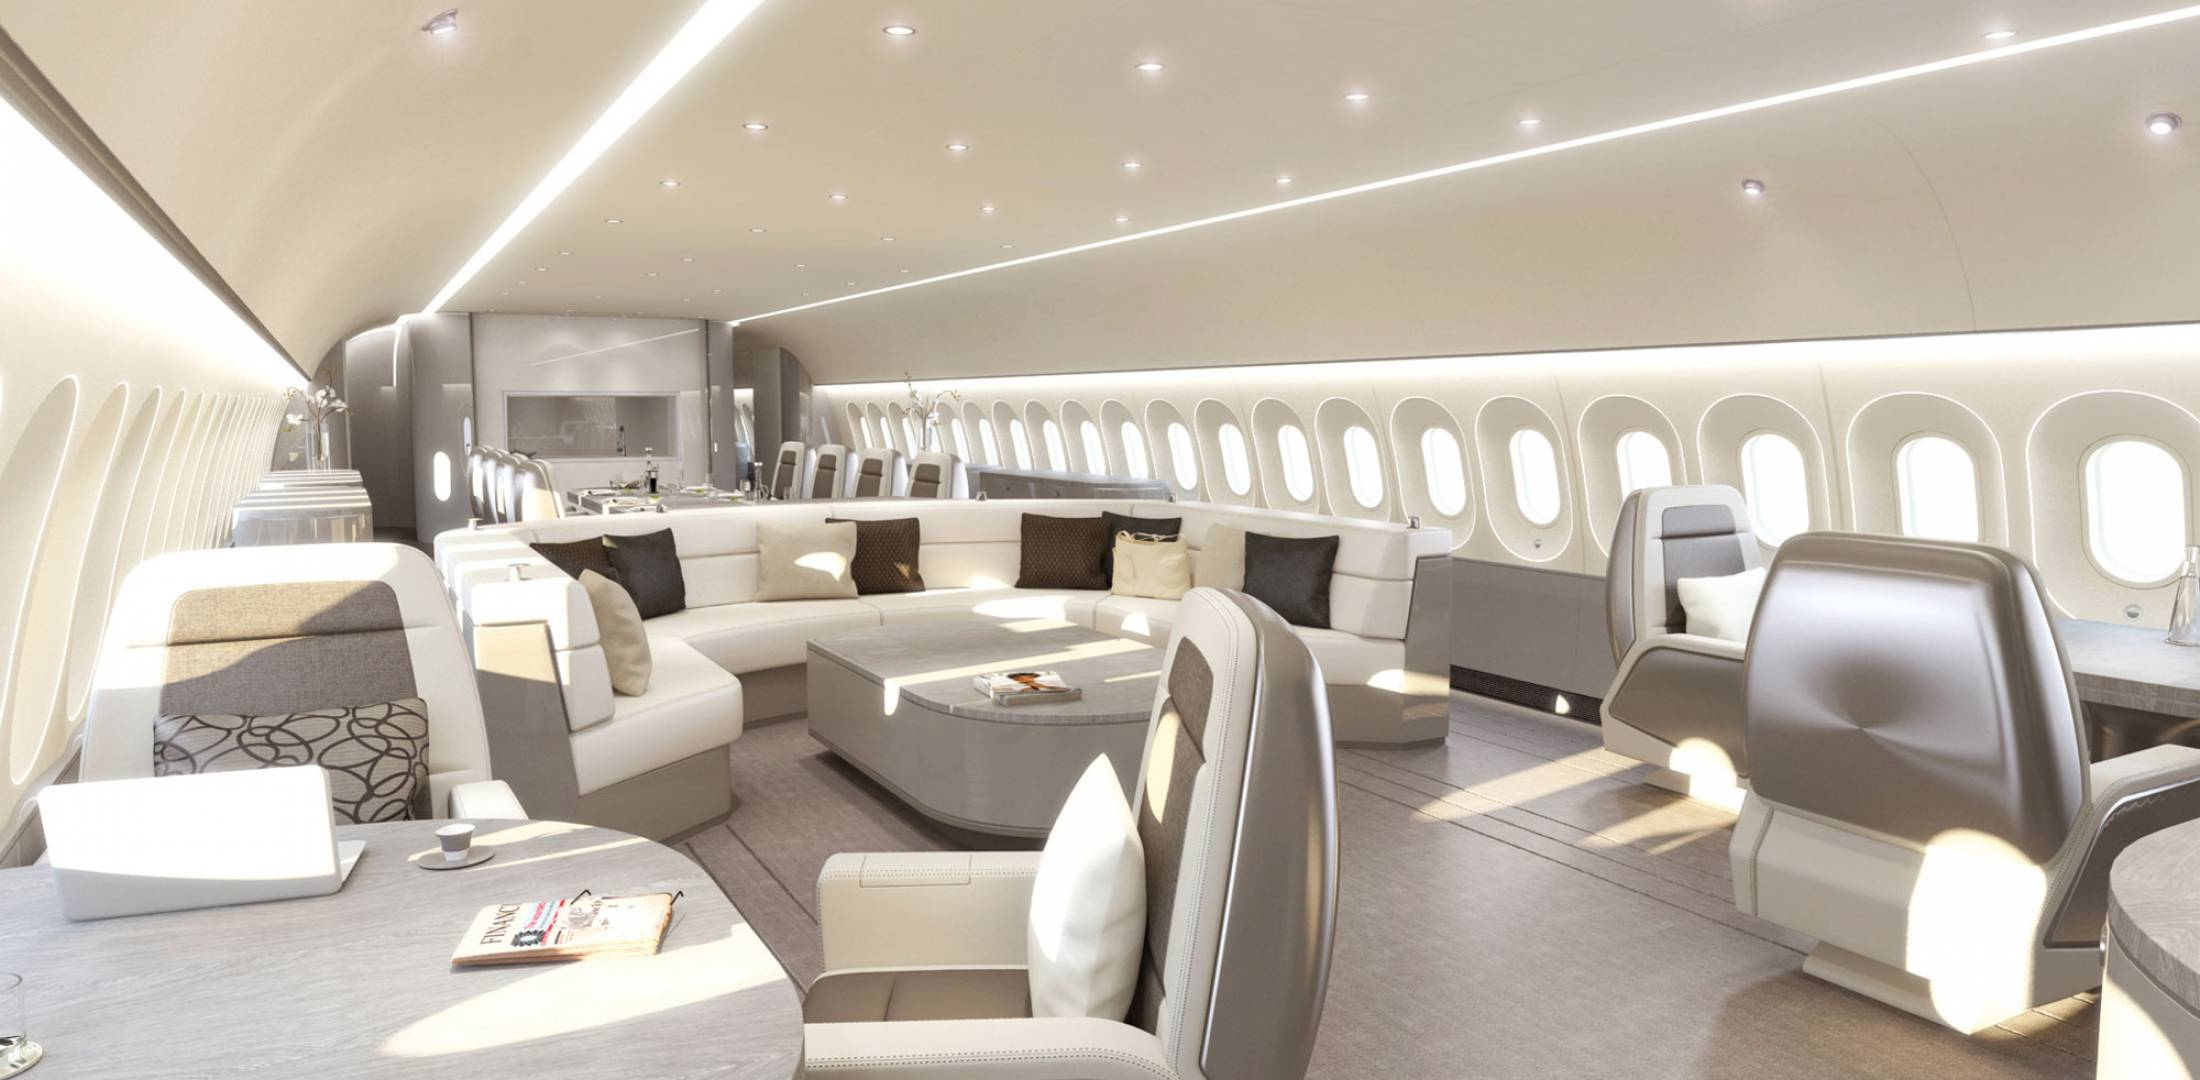 Small luxury cabin interior - Jet Aviation Basel S Visionary Cabin Interior For Vip Widebody Aircraft May Provide A Glimpse Into The Future Particularly As Manufacturers Increasingly